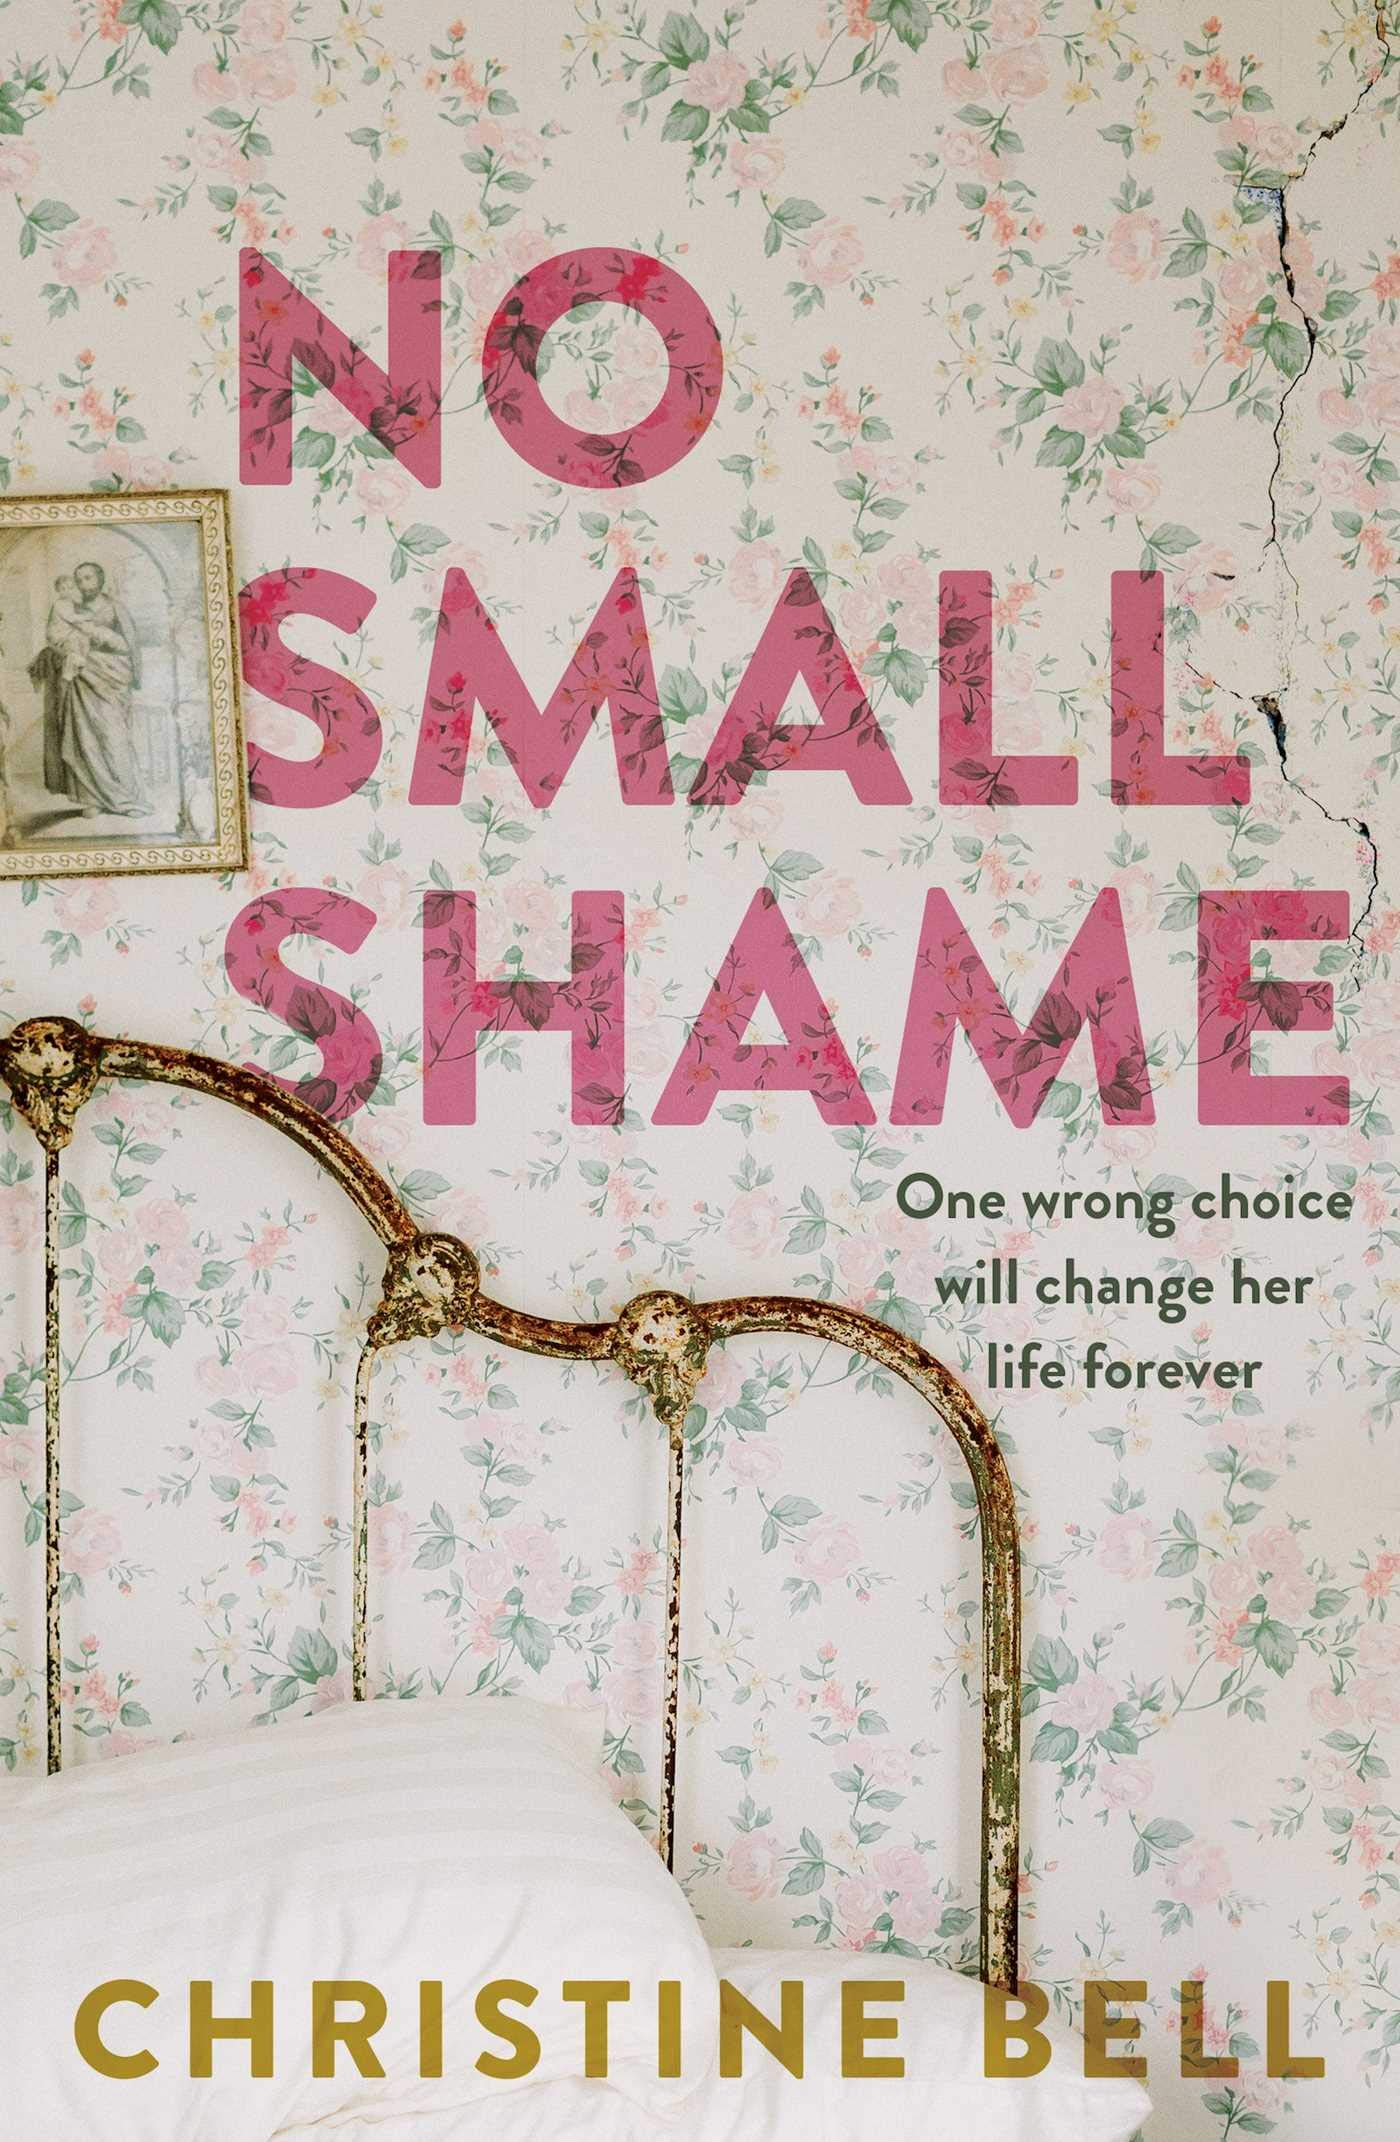 No Small Shame: One wrong choice will change her life forever